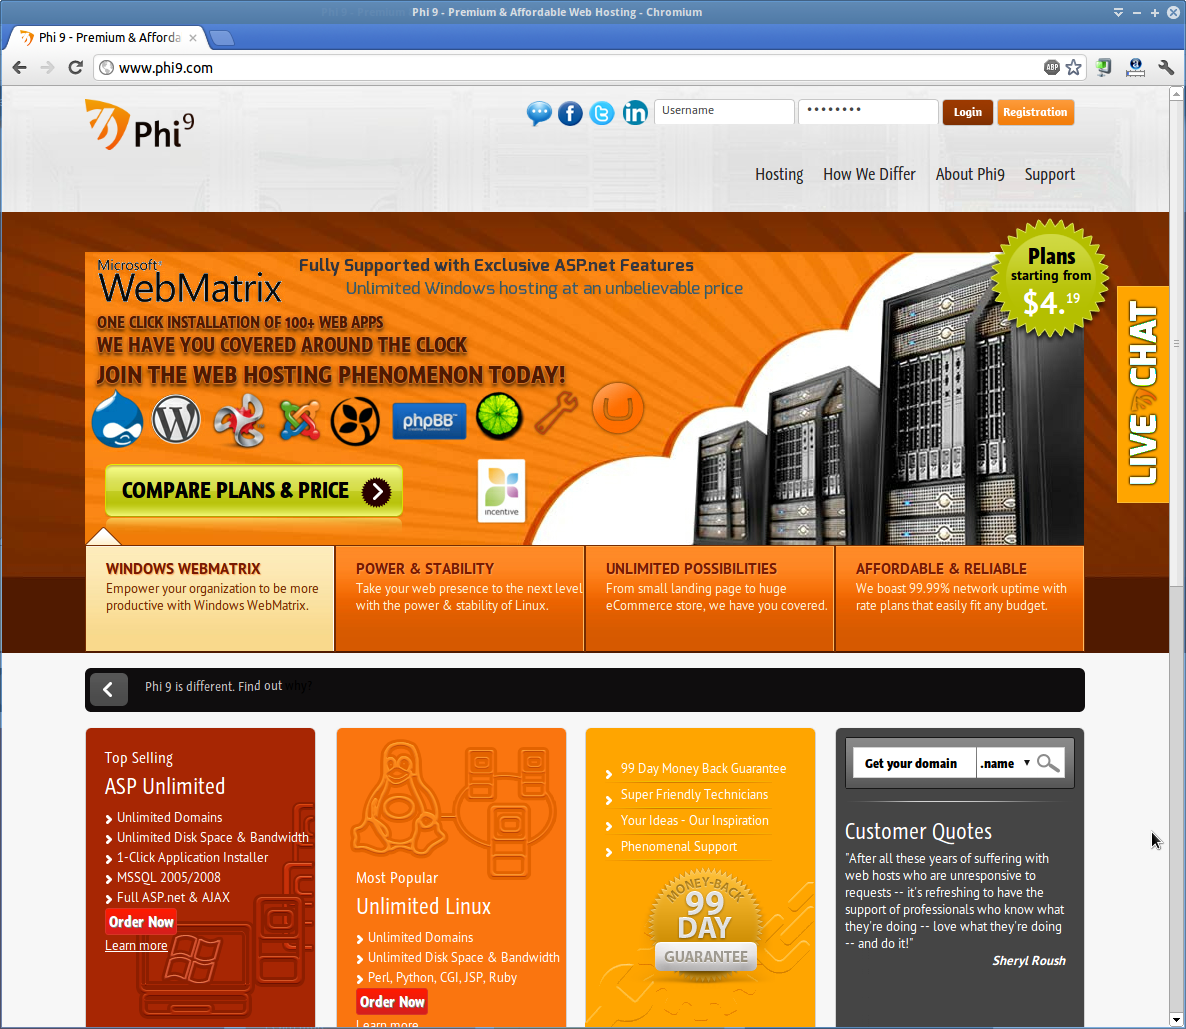 The Web Hosting Phenomenon!